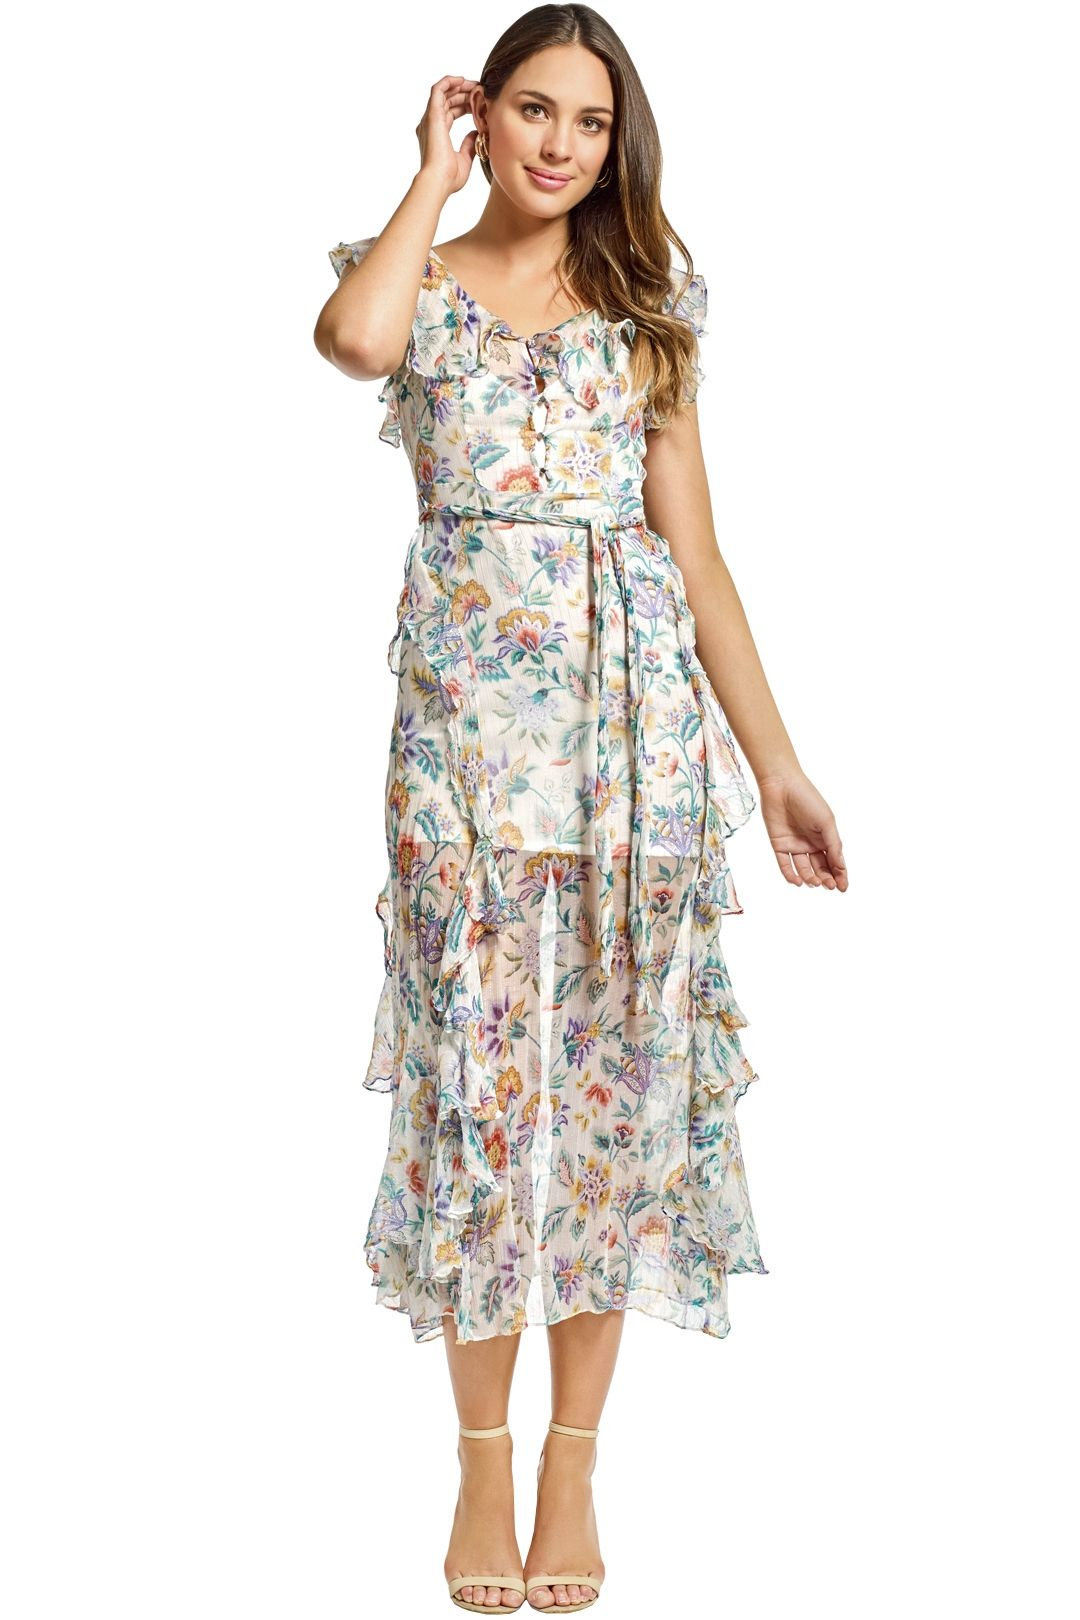 Alice McCall - Oh Oh Oh Maxi Dress - Ivory Garden - Front